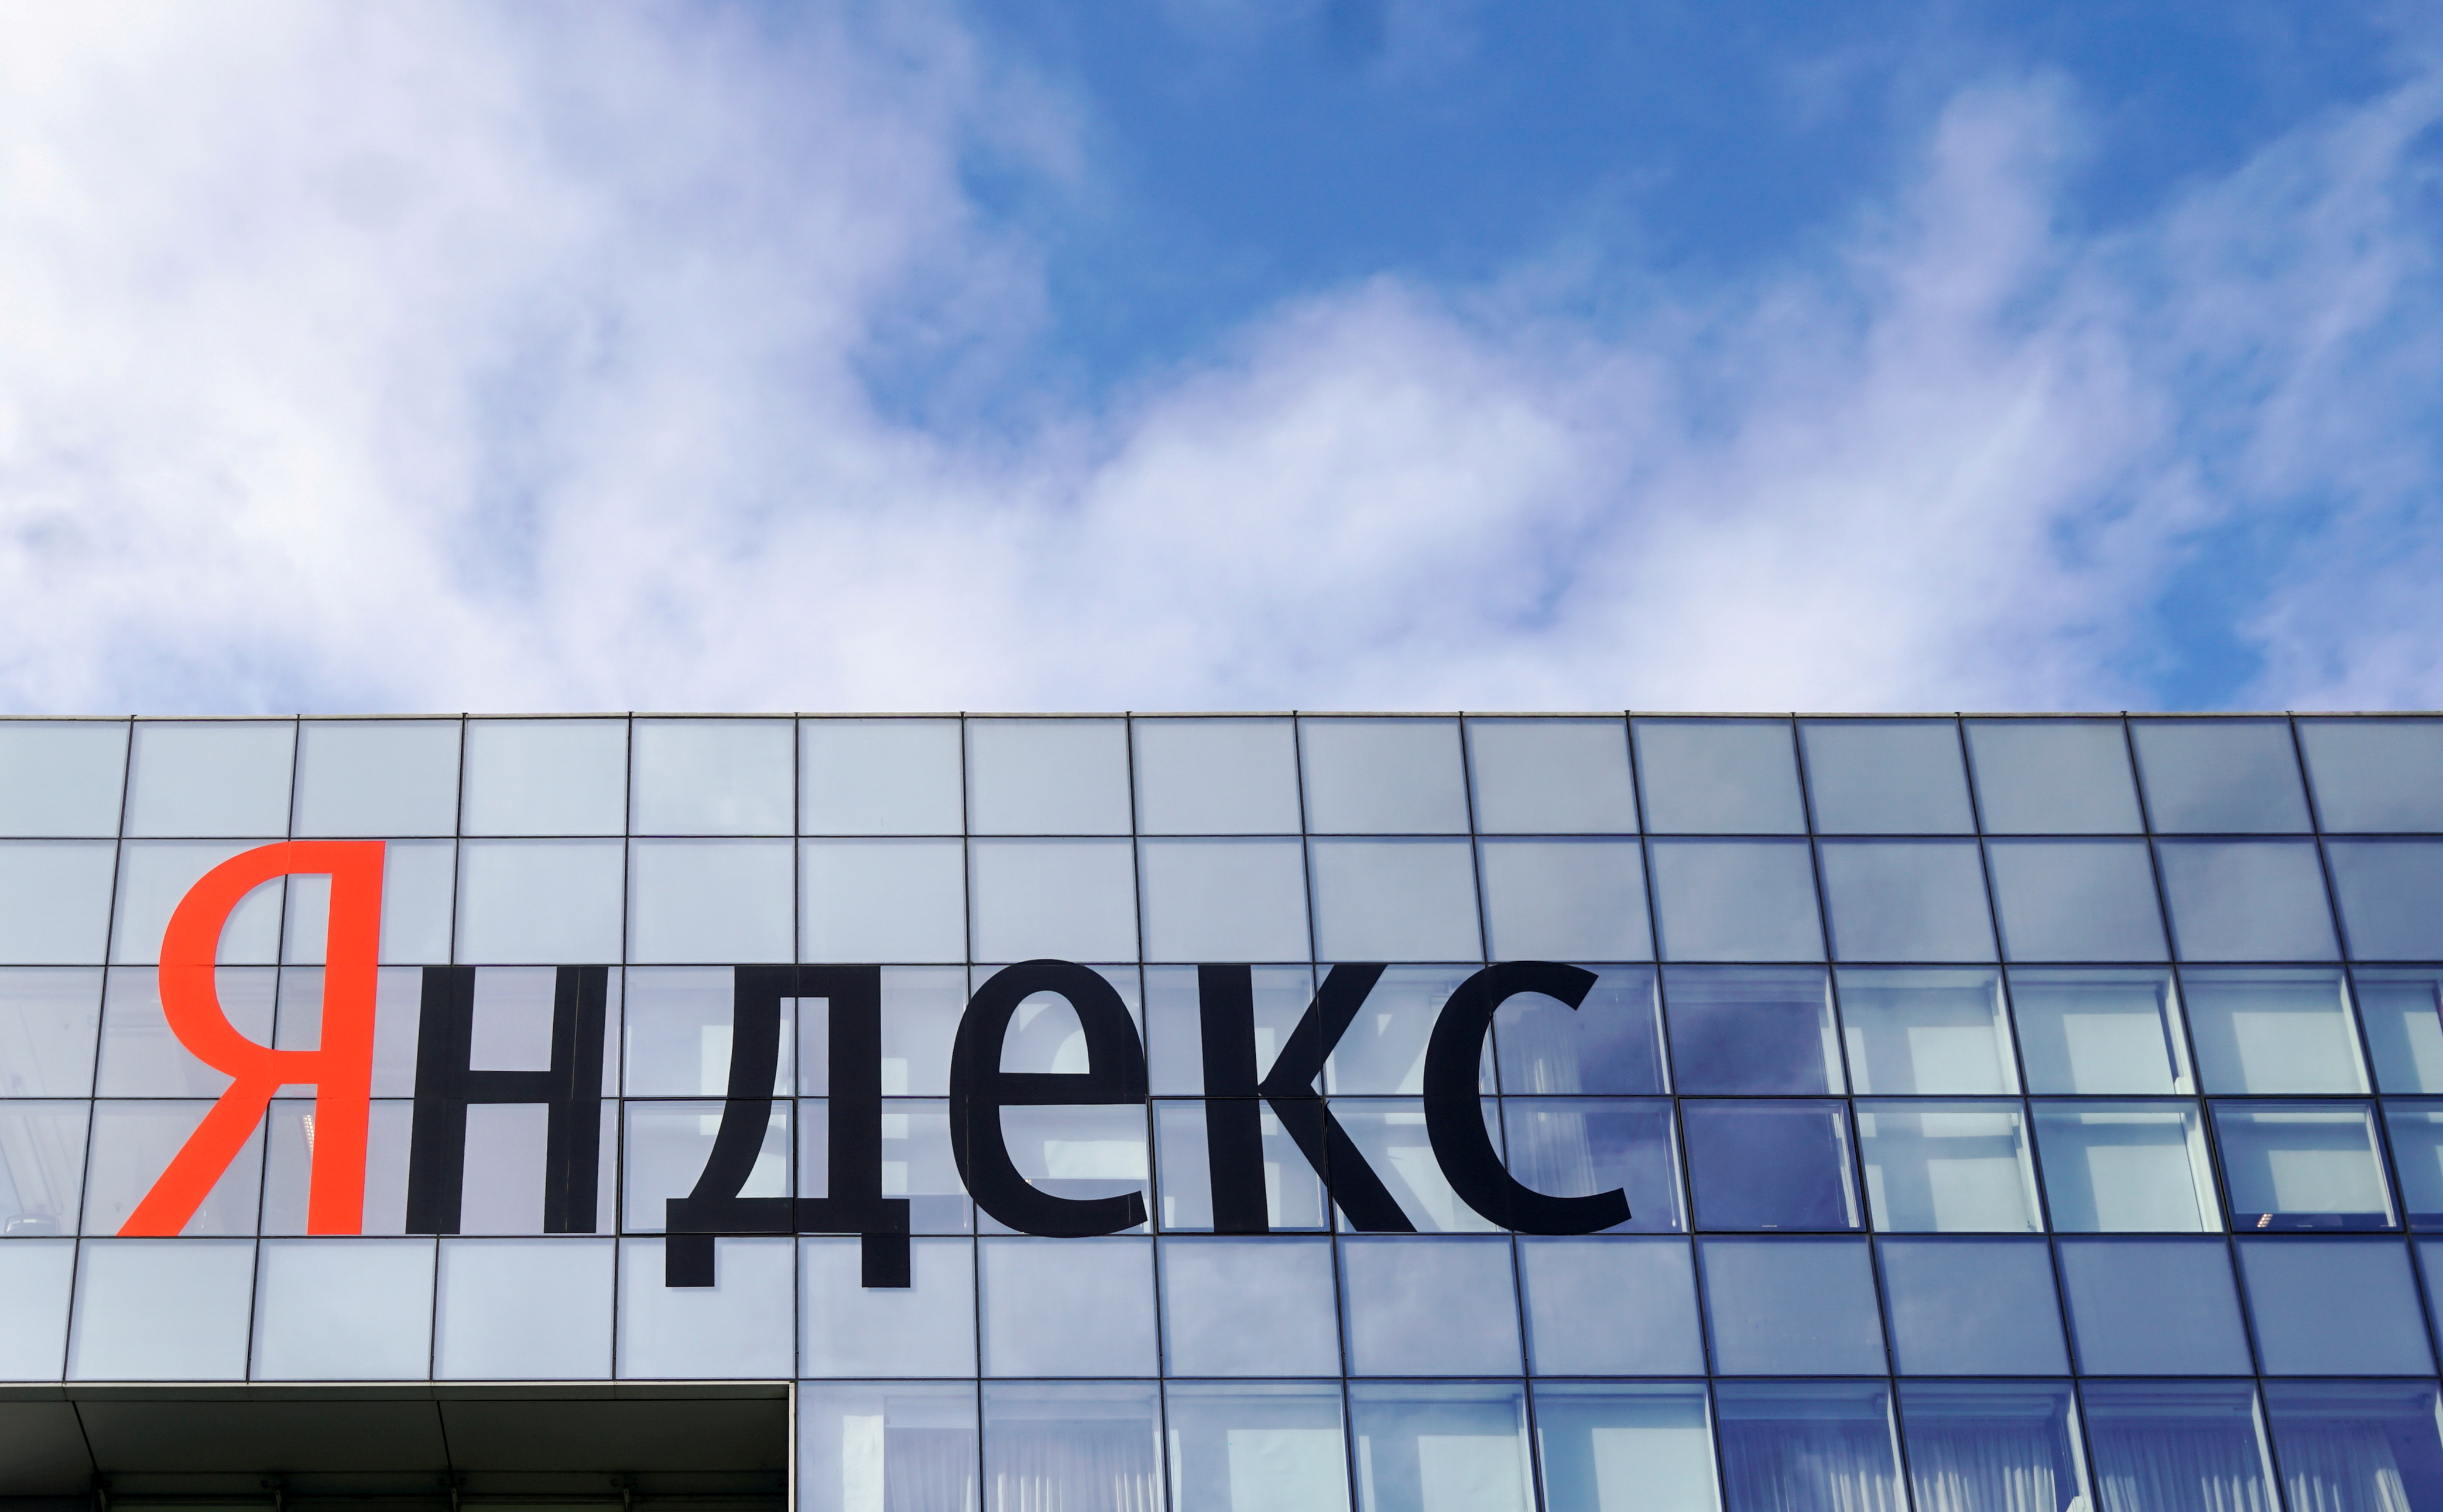 Russia S Yandex Ups 2021 E Commerce Investment Plan After Strong Q2 Reuters